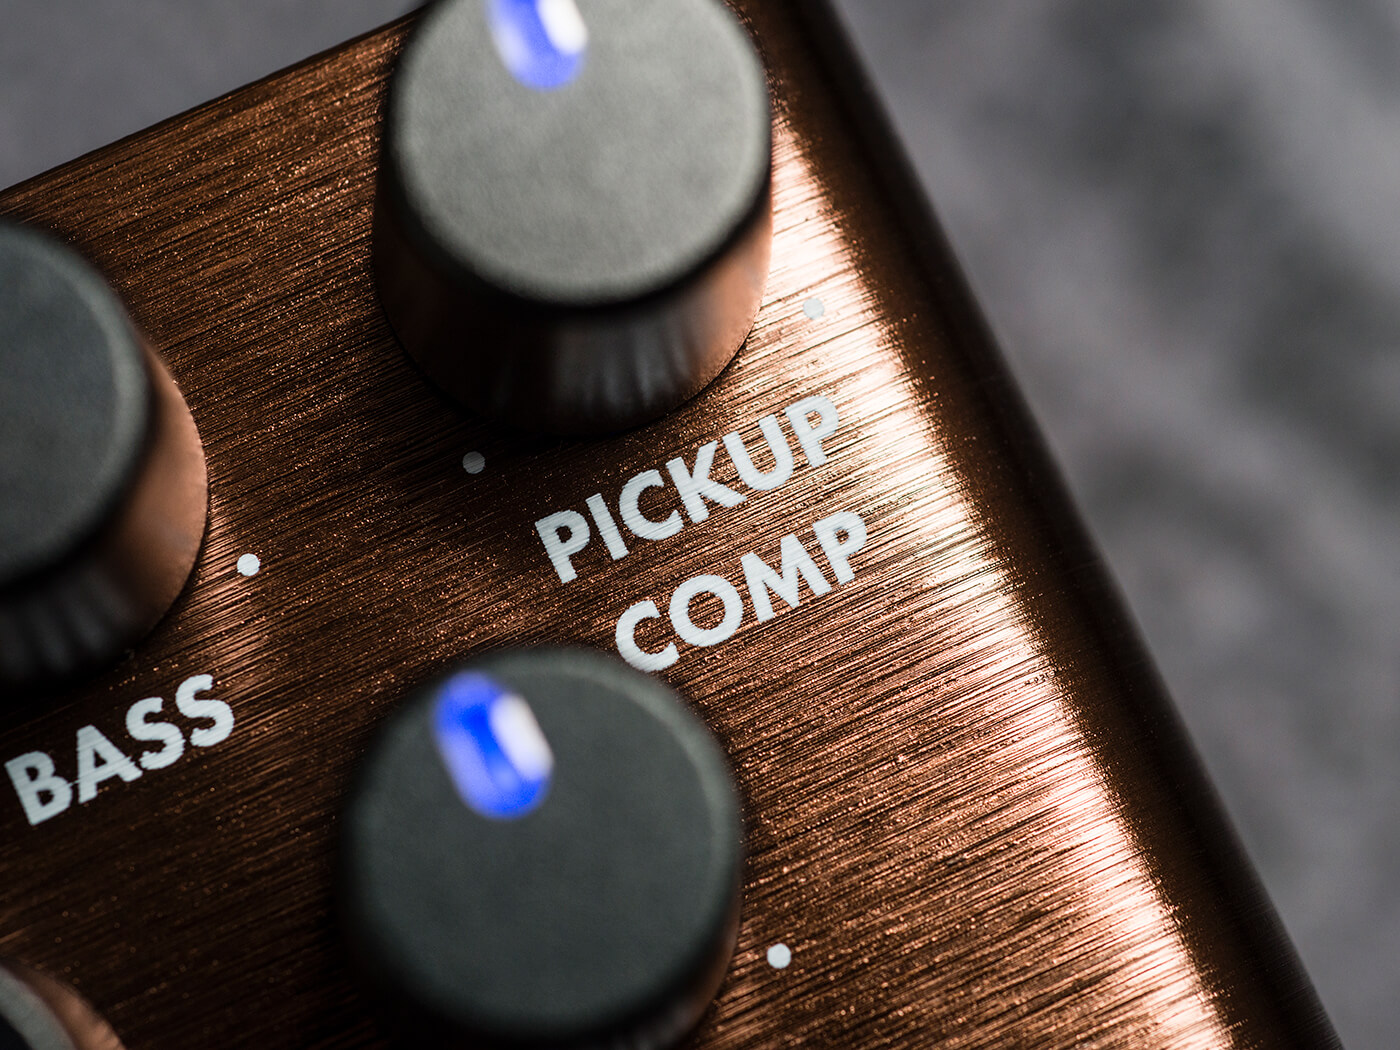 Review: Six new Fender effects pedals